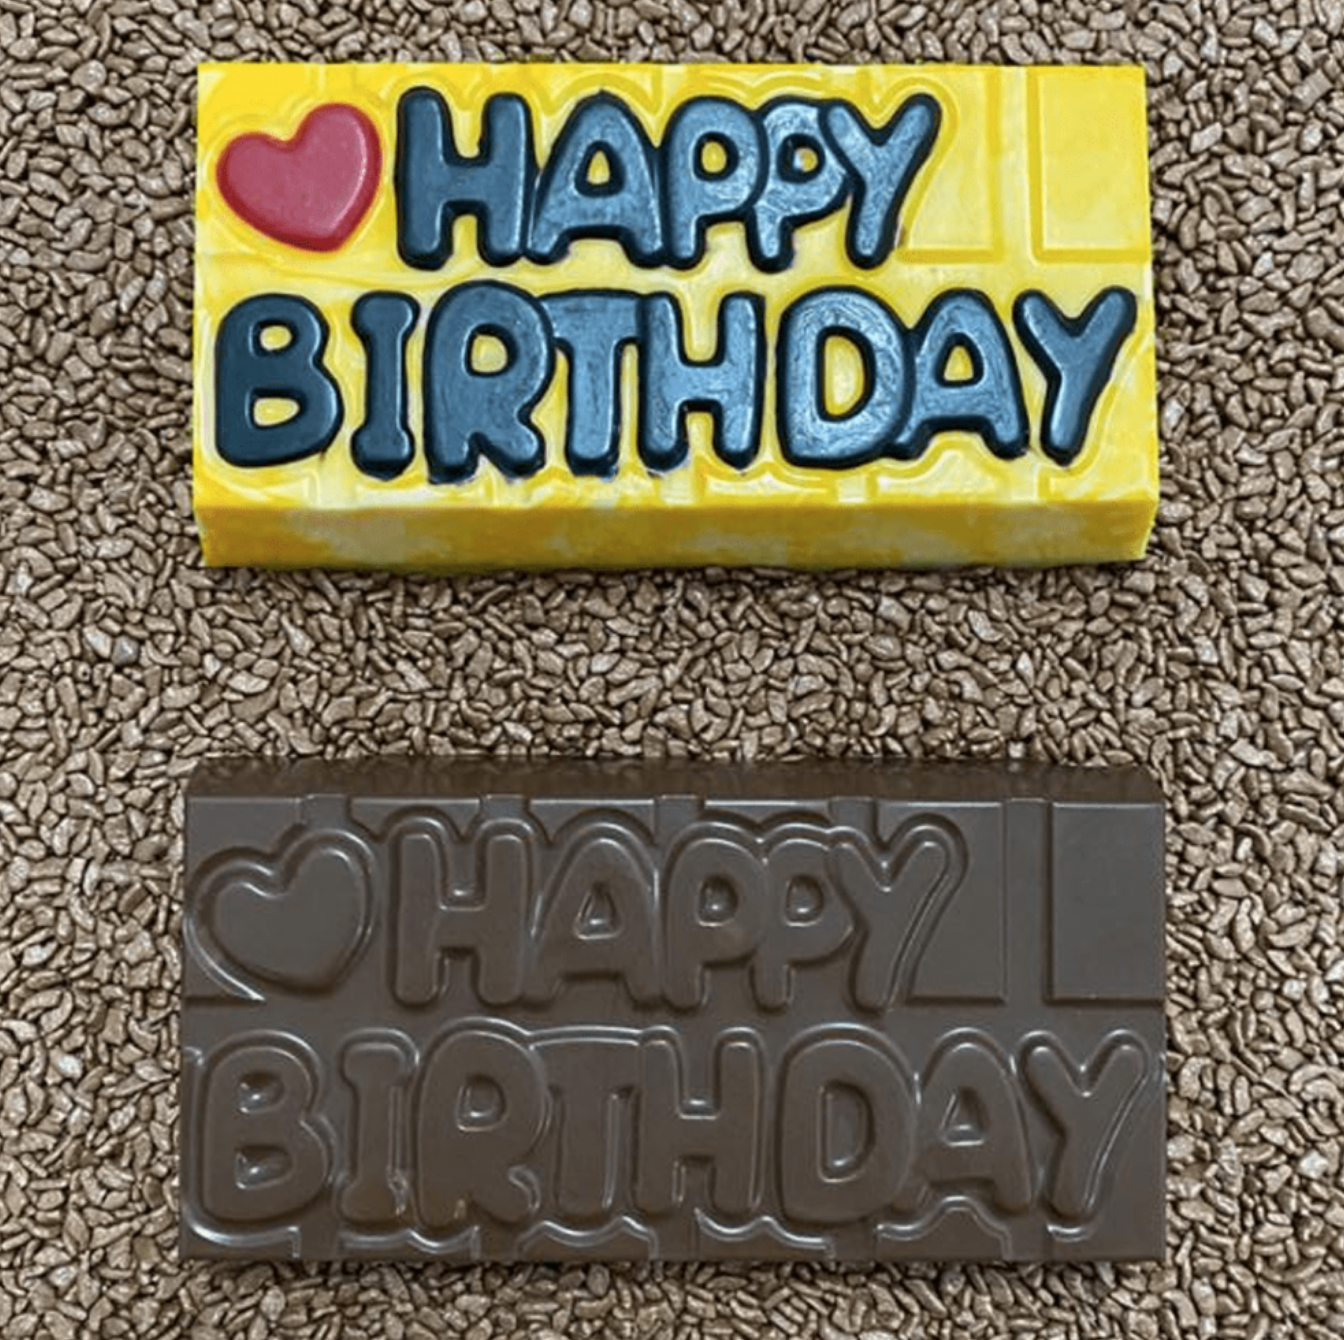 Happy Birthday Tablet - 3 Part Mold - PRE-ORDER - Arriving Feb. 5